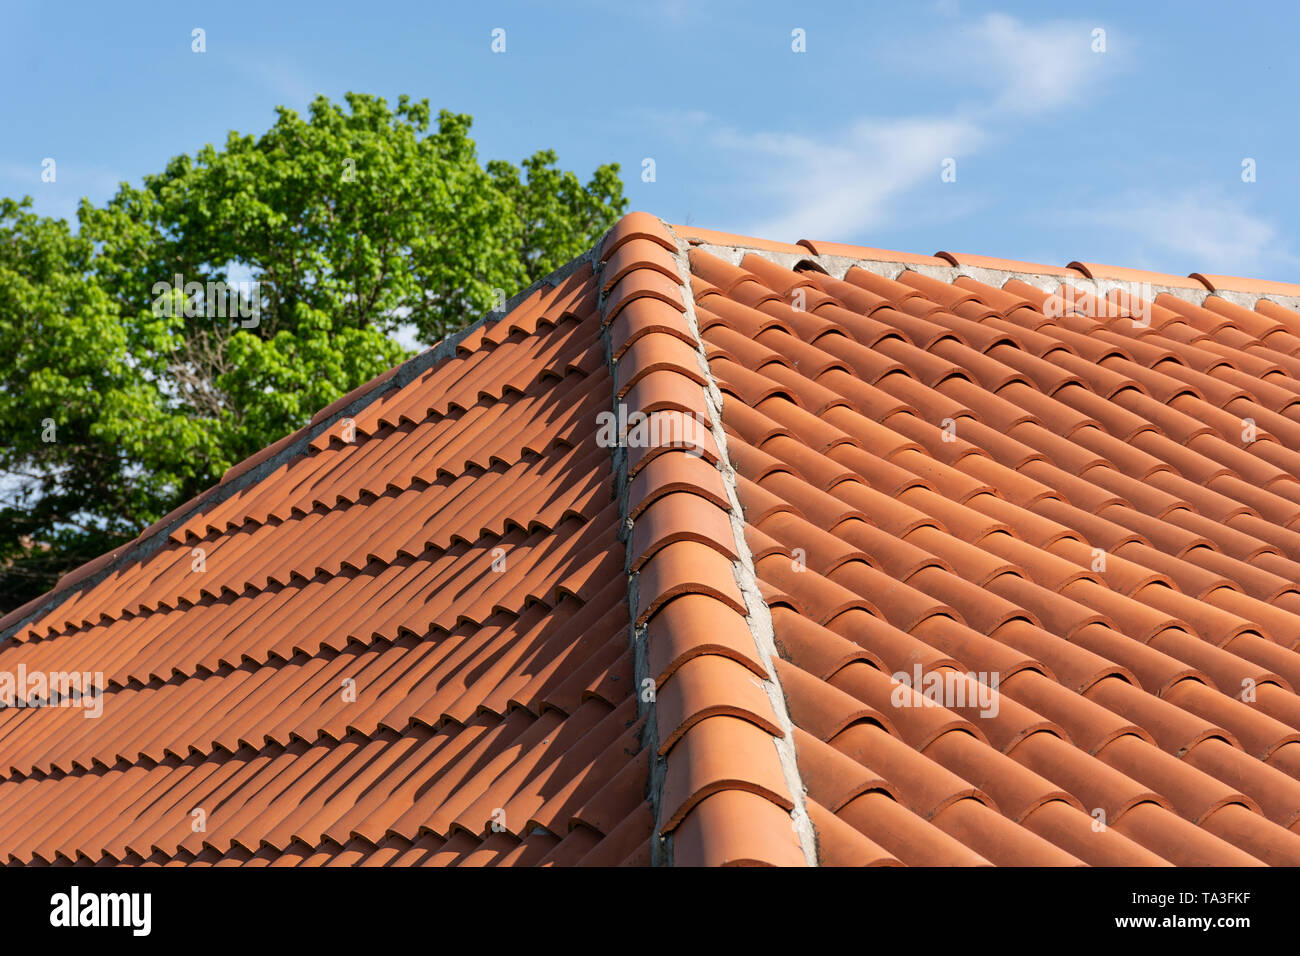 Orange Roof Tile Stock Photos Amp Orange Roof Tile Stock